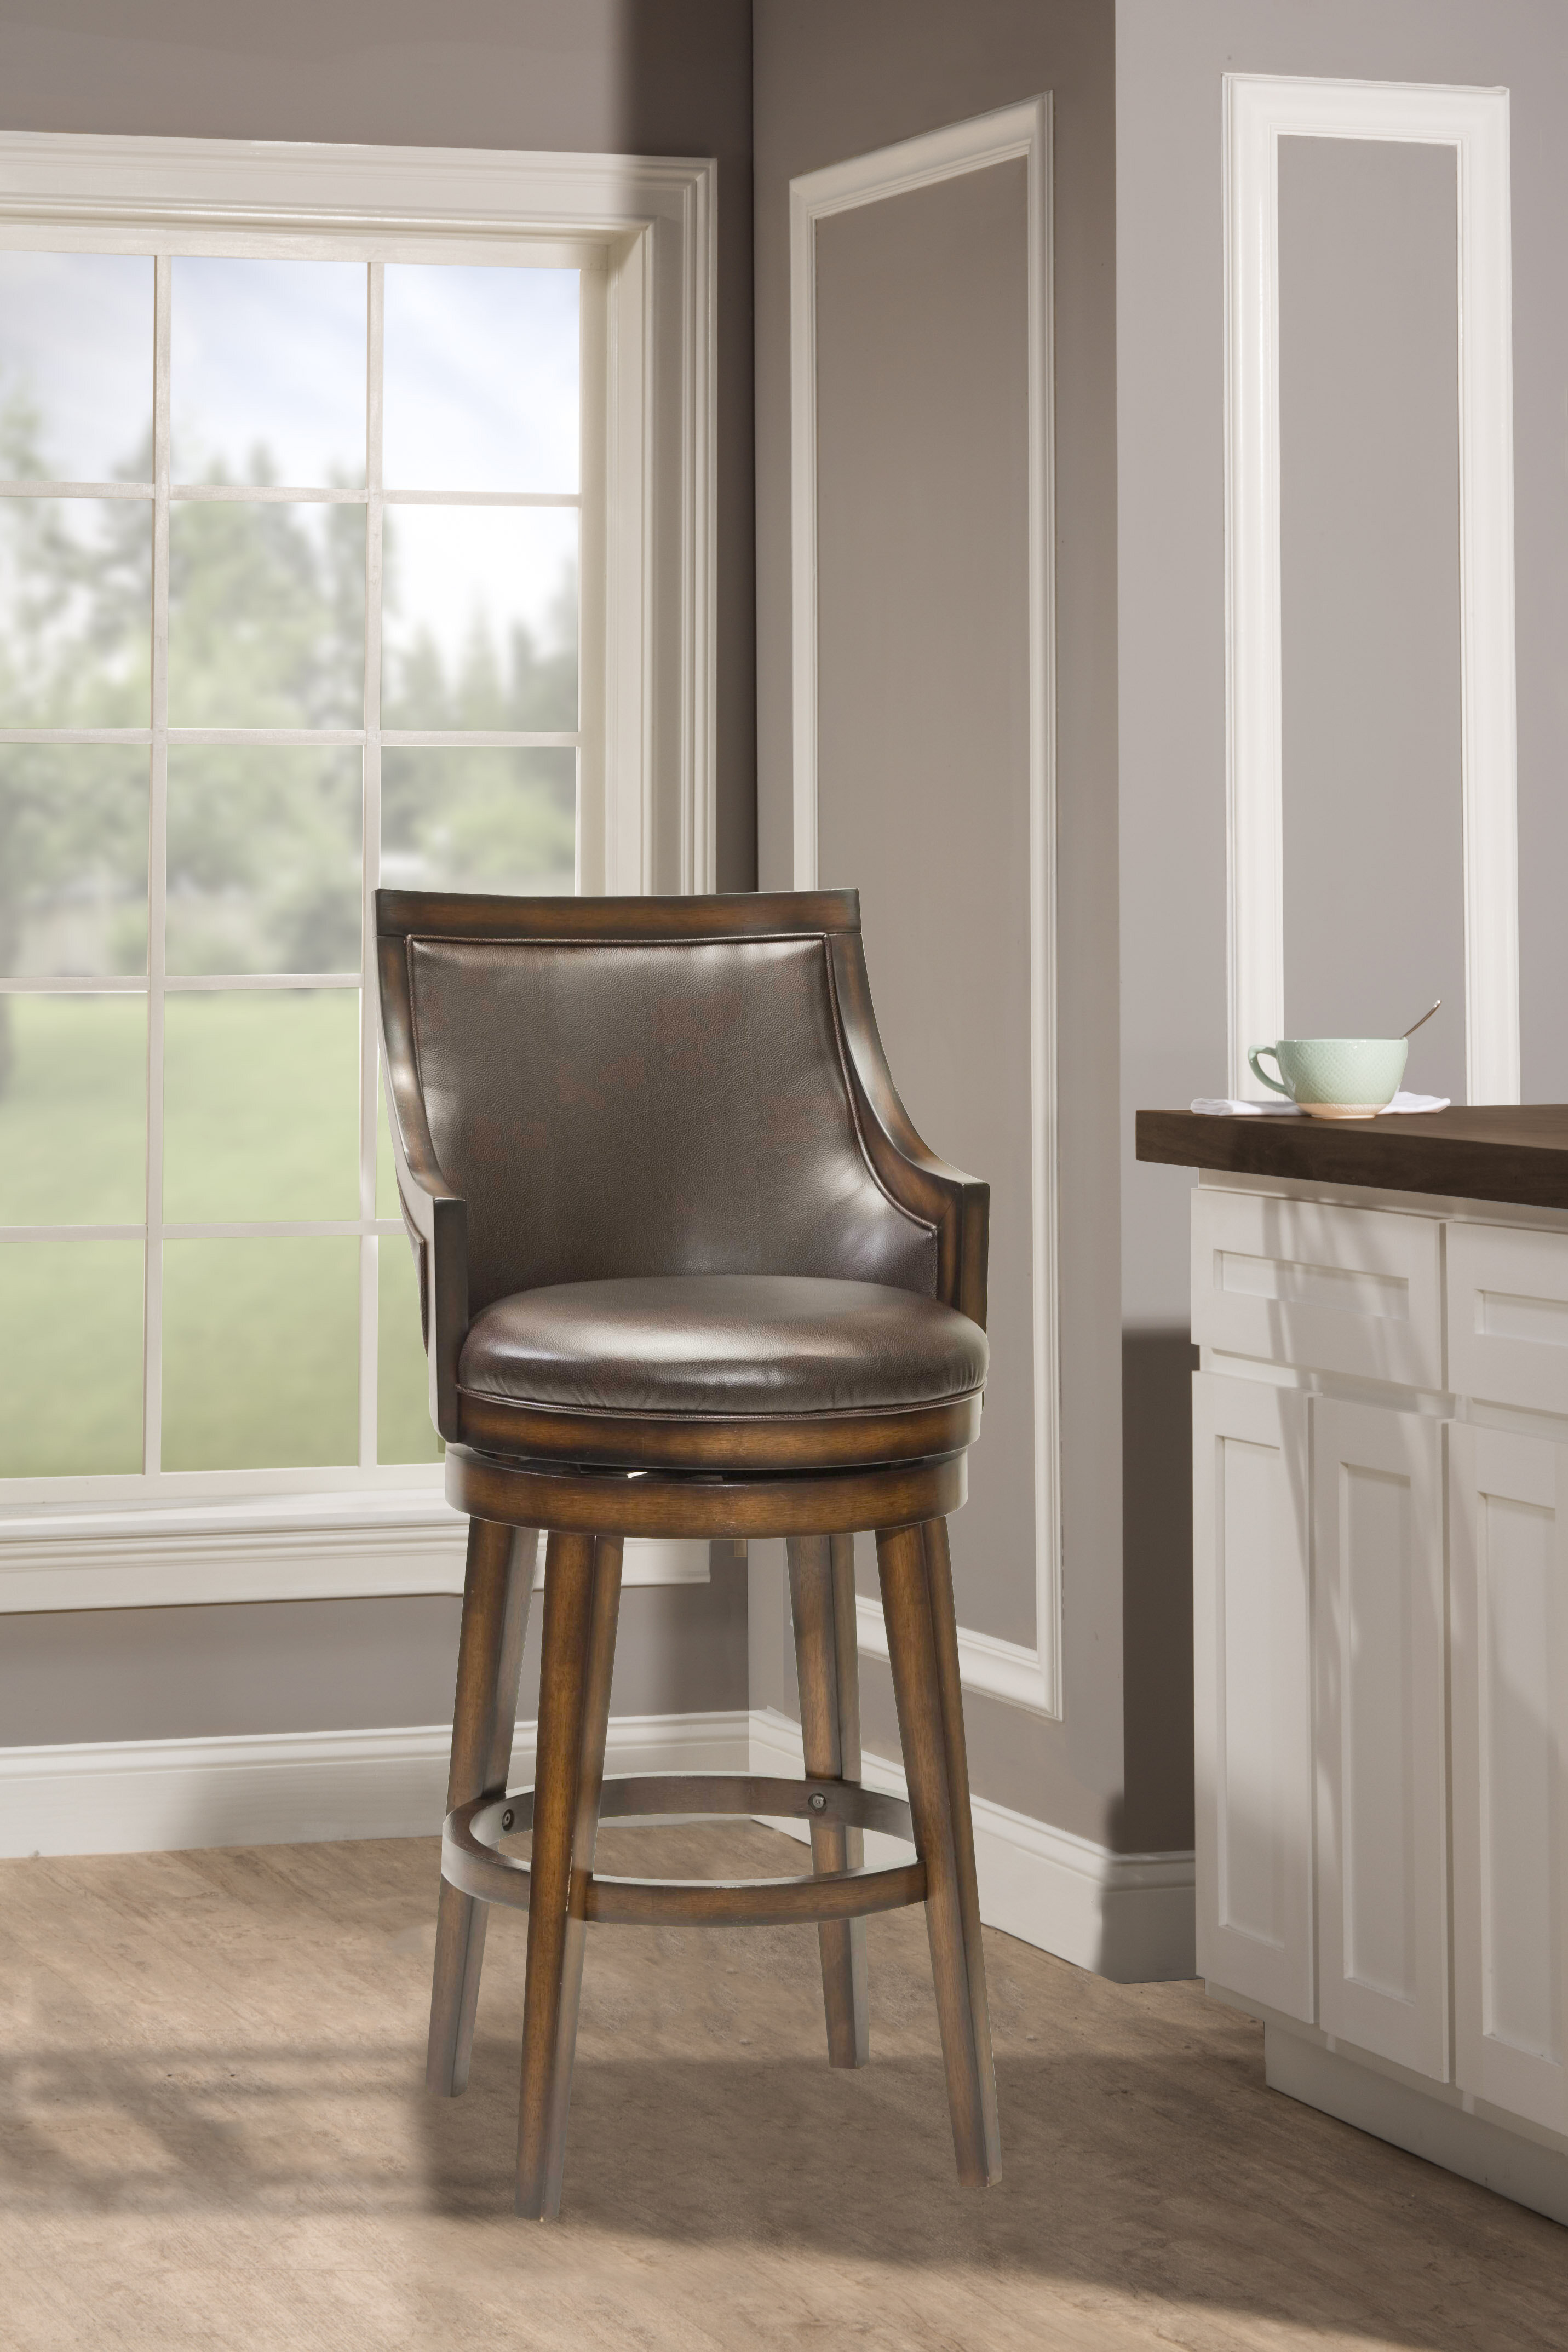 Picture of: Millwood Pines Norval Bar Counter Swivel Stool Reviews